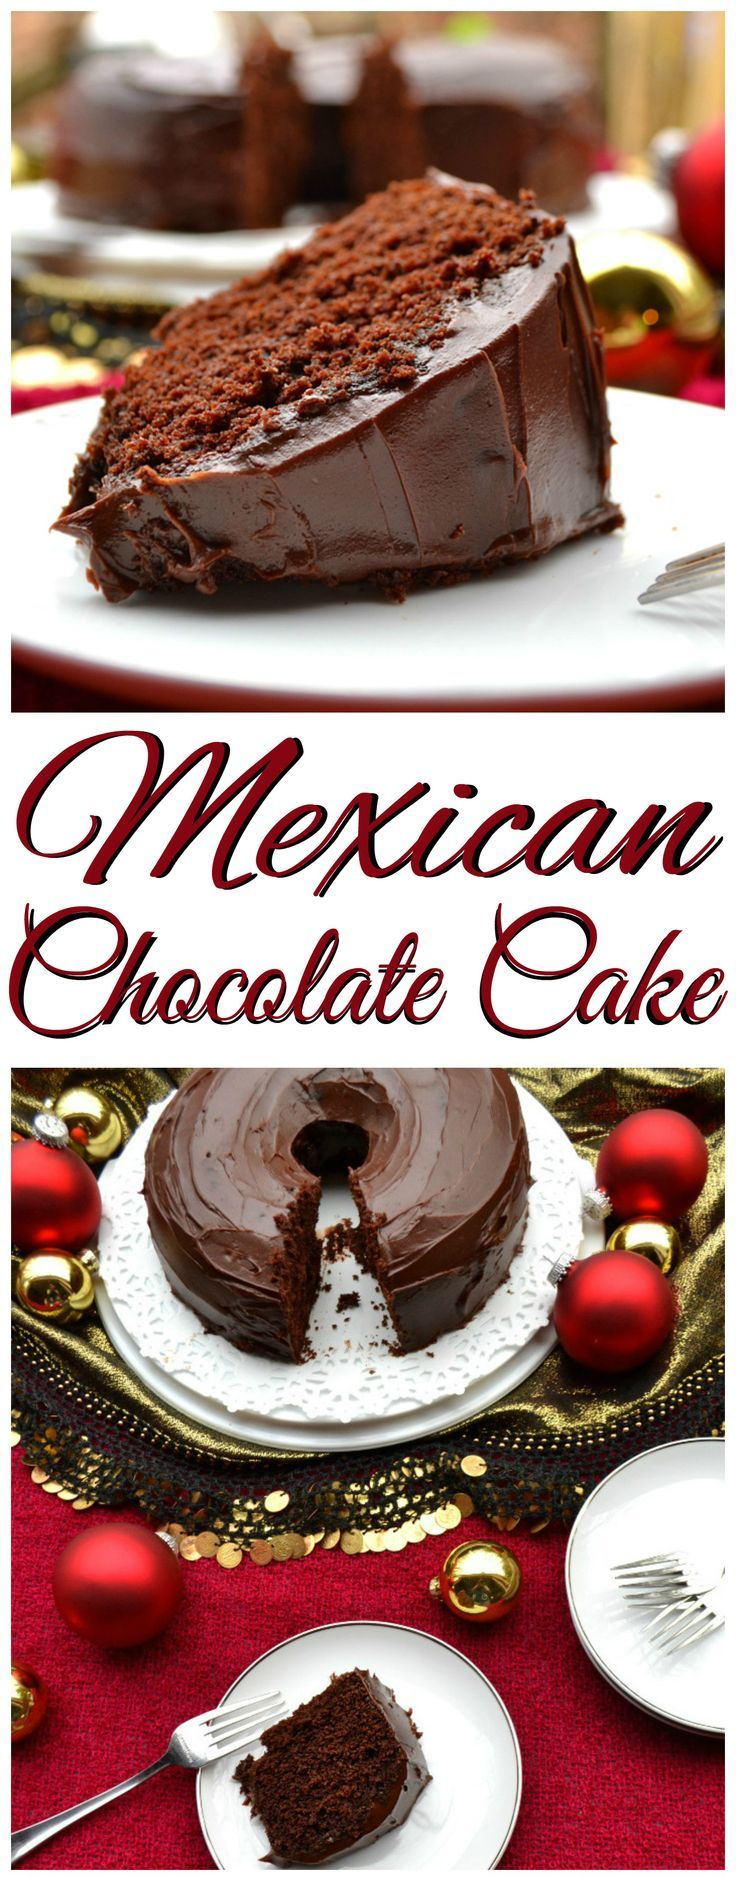 Mexican Chocolate Cake & Ganache Made with Abuelita | Chocolate, Coffee, Cinnamon & Vanilla | Rich, Moist, Flavorful & Delicious | Christmas Holiday Baking | http://www.craftycookingmama.com | #nestleholiday ad